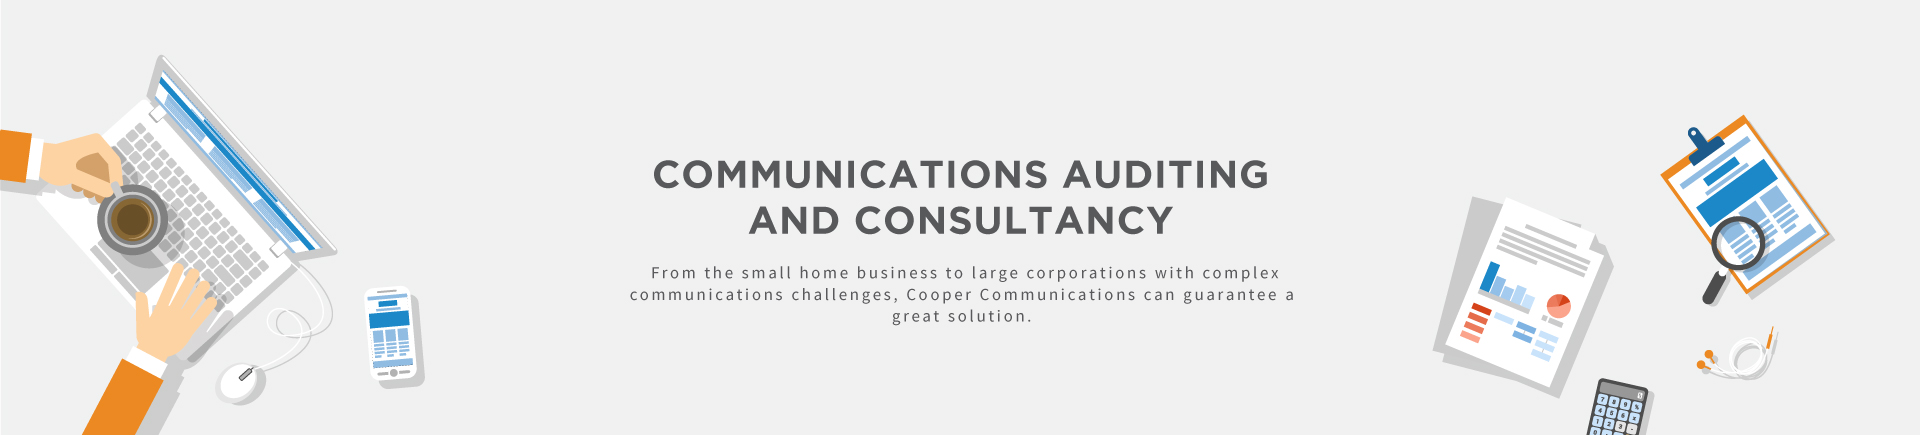 Communications auditing and consultancy